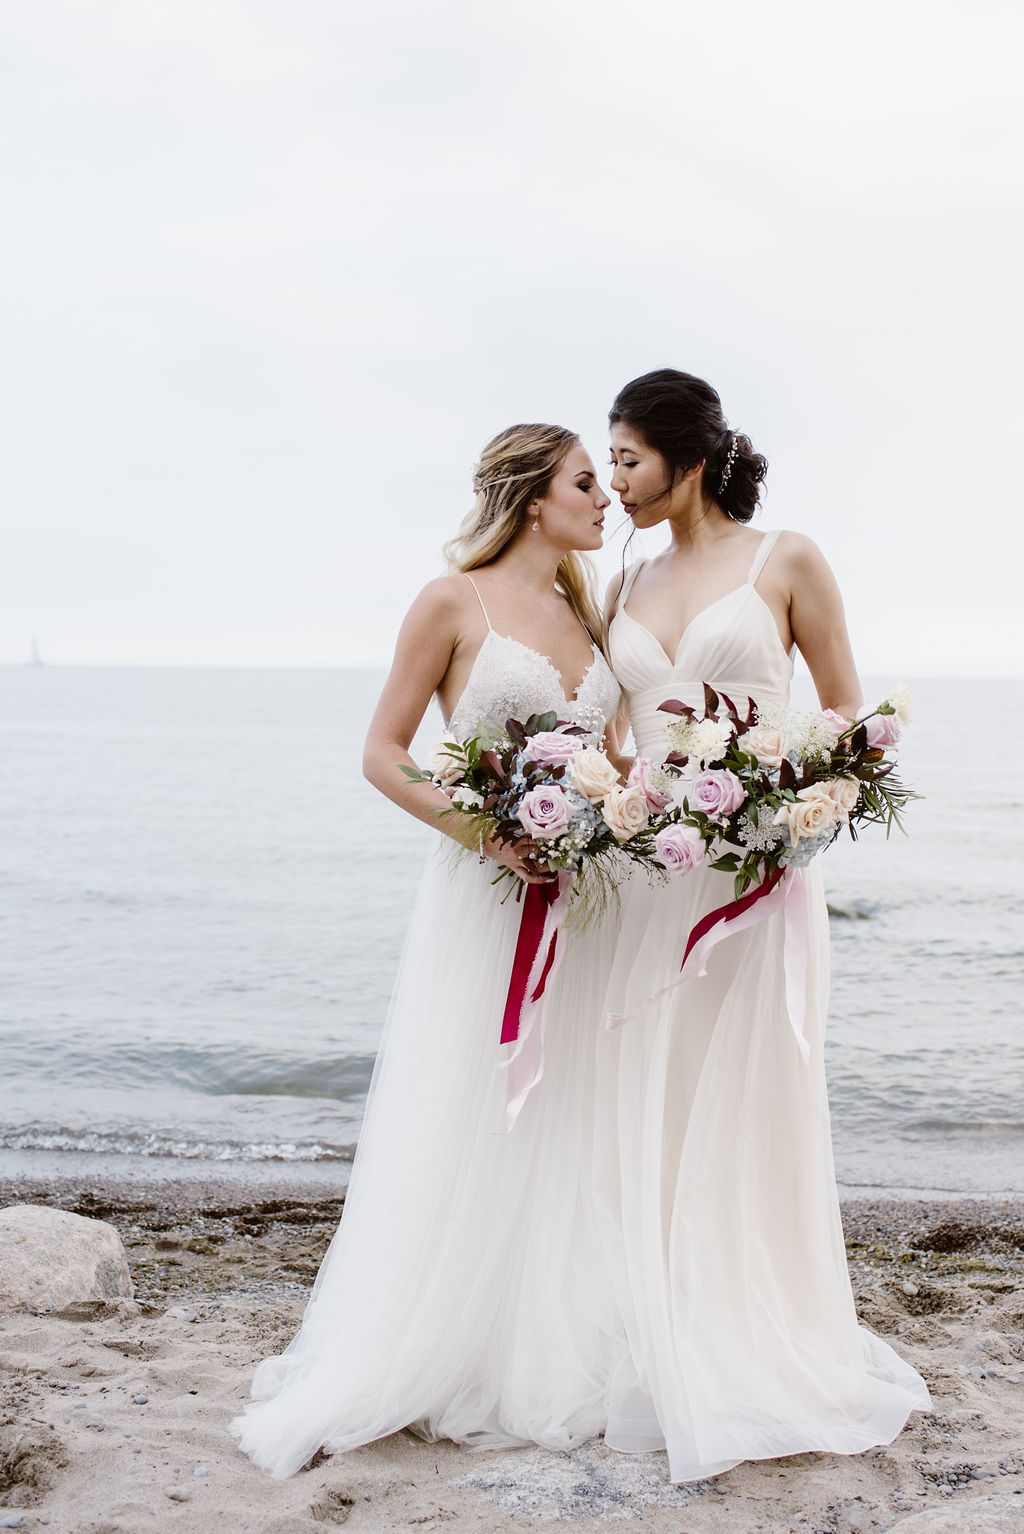 Romantic Beach Elopement Editorial For All Couples Lesbian Beach